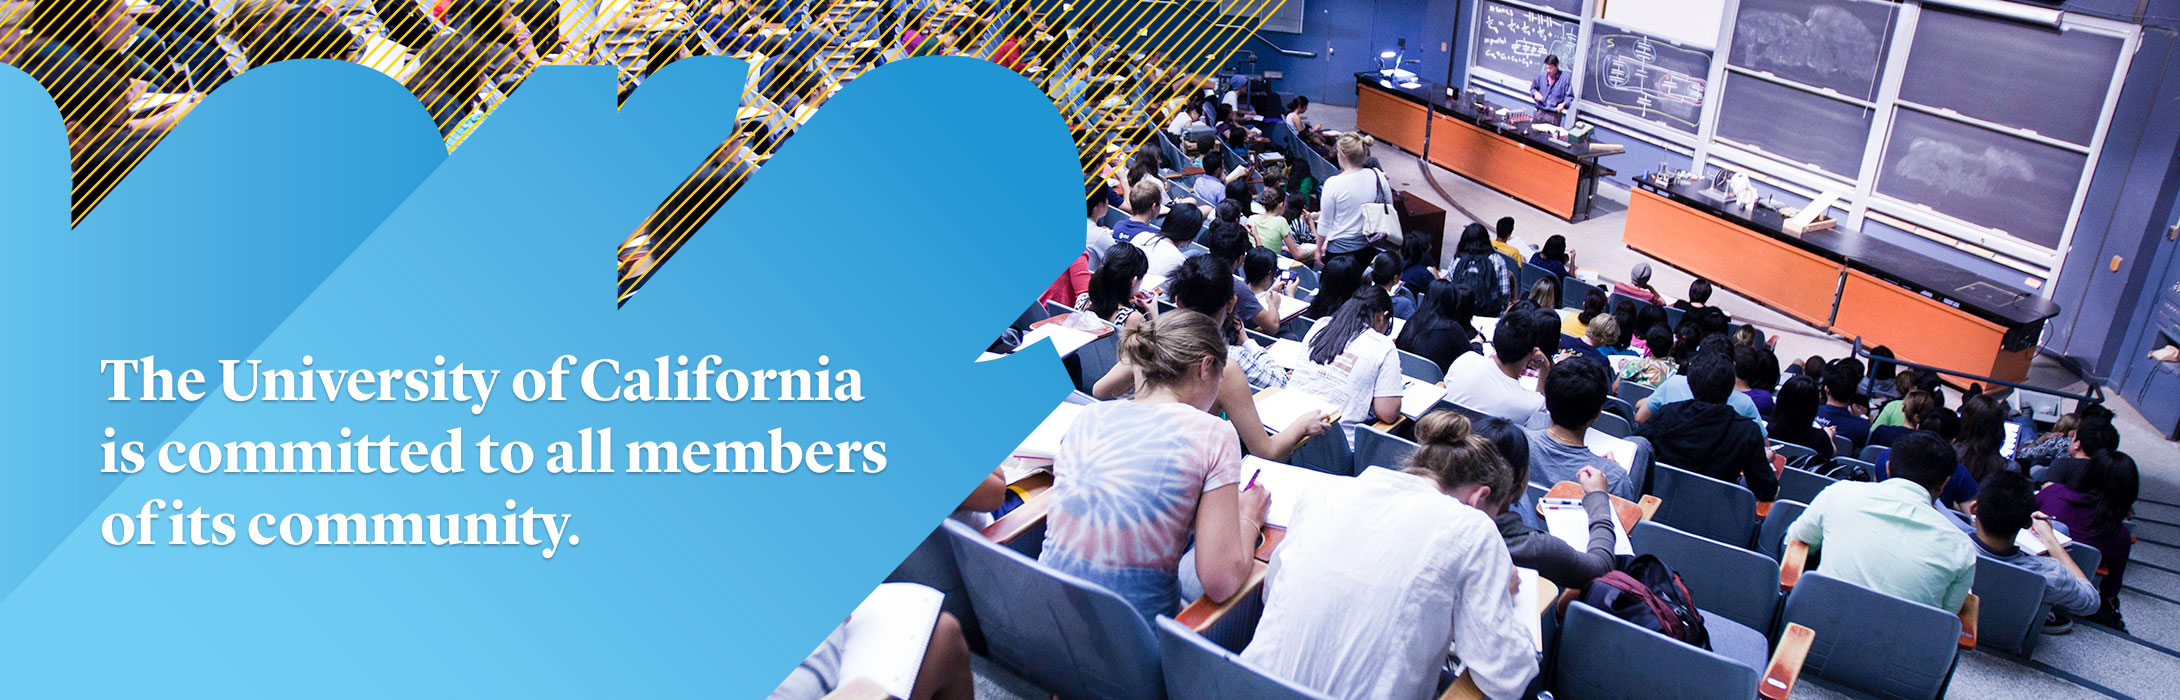 The University of California is committed to all members of its community.